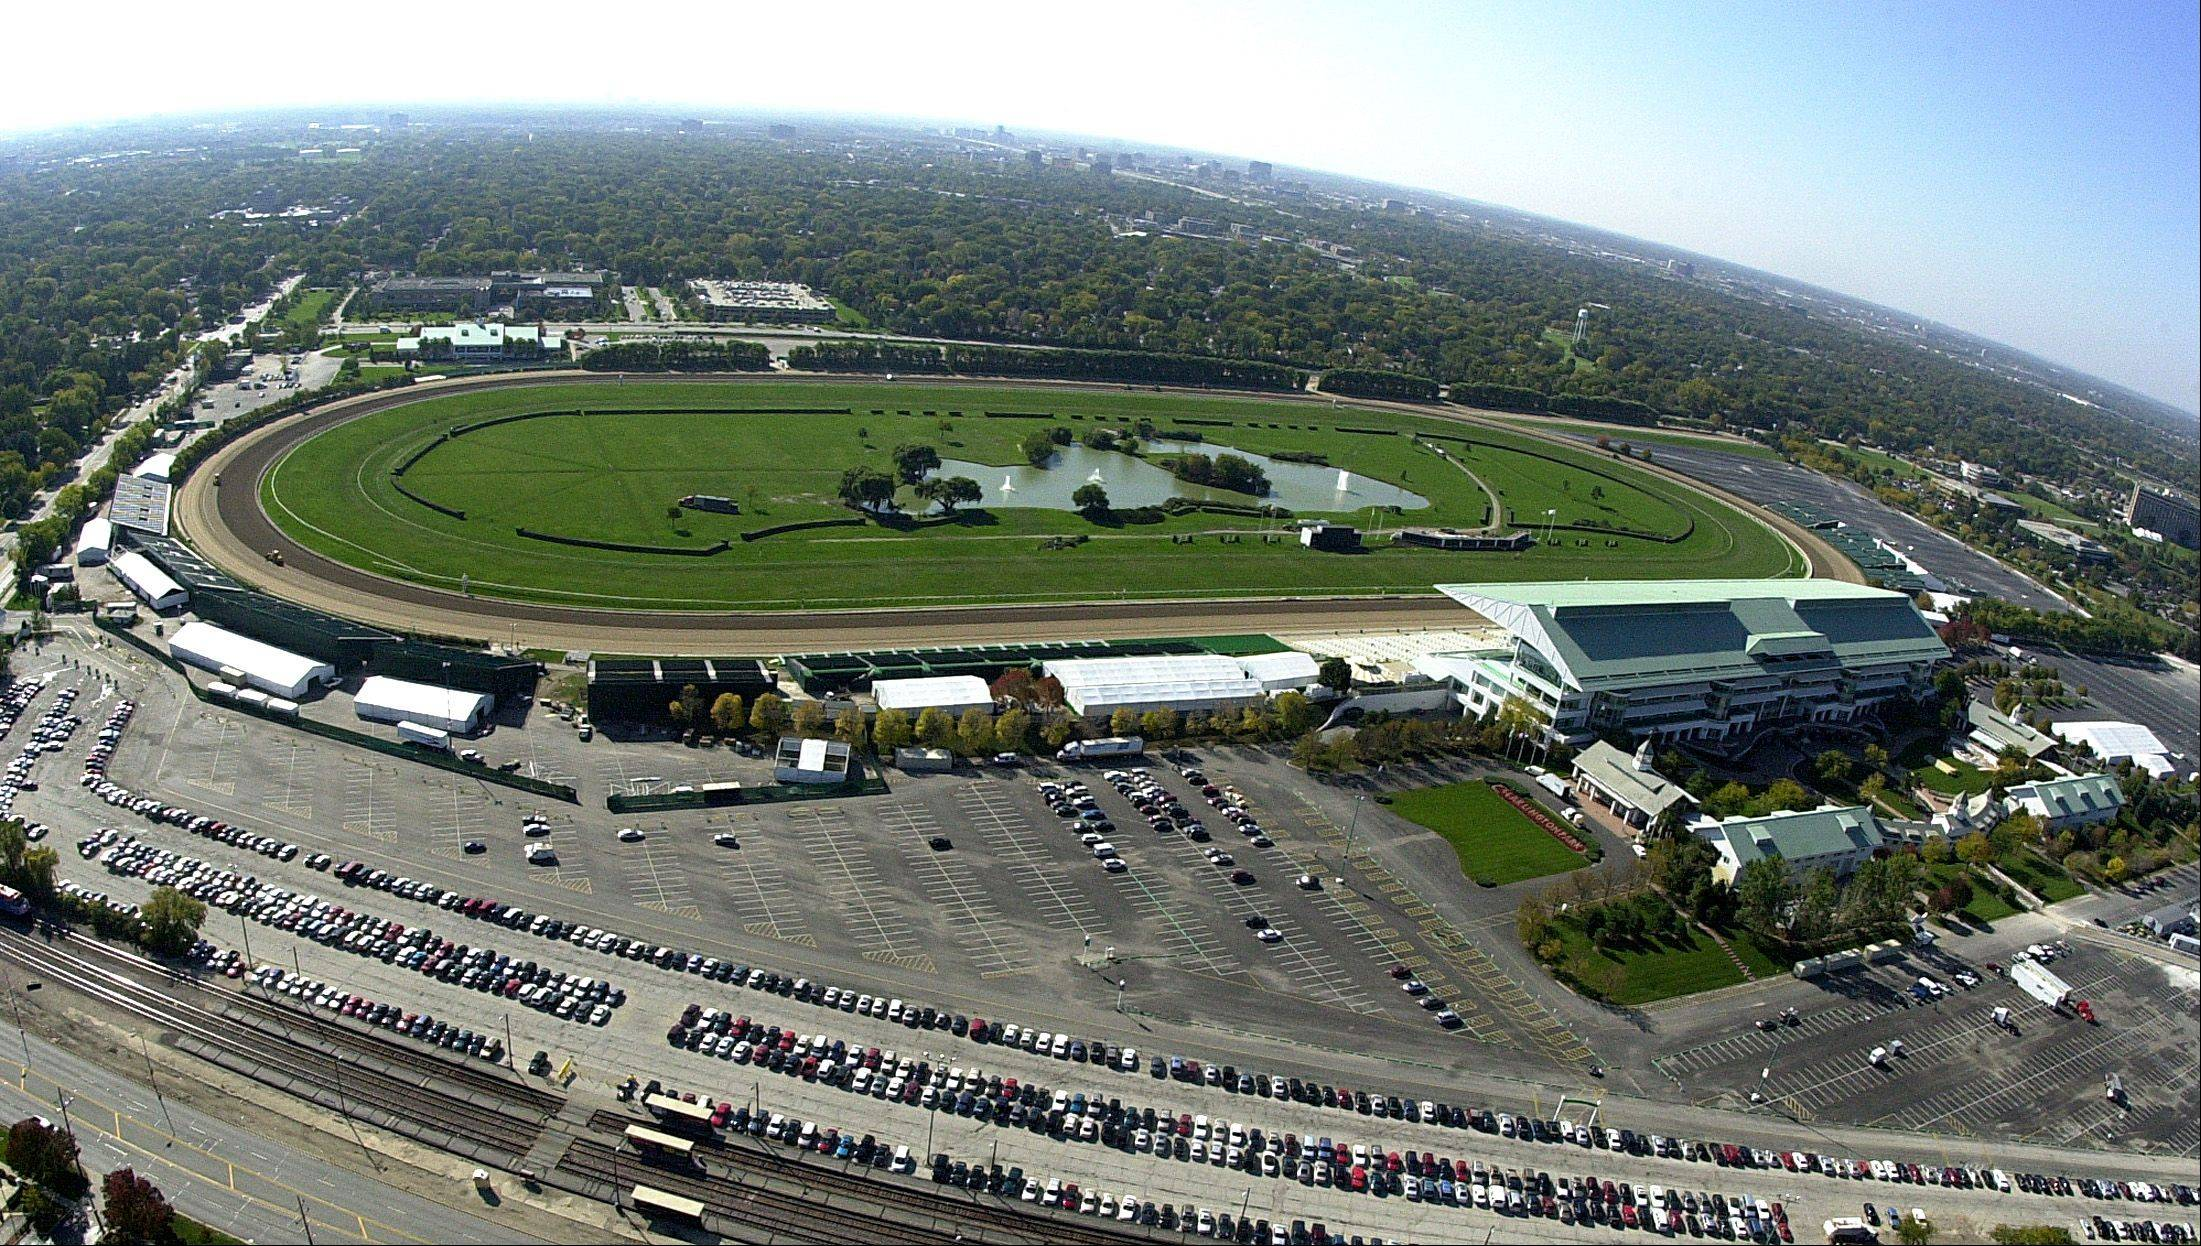 Will slots come to Arlington Park?